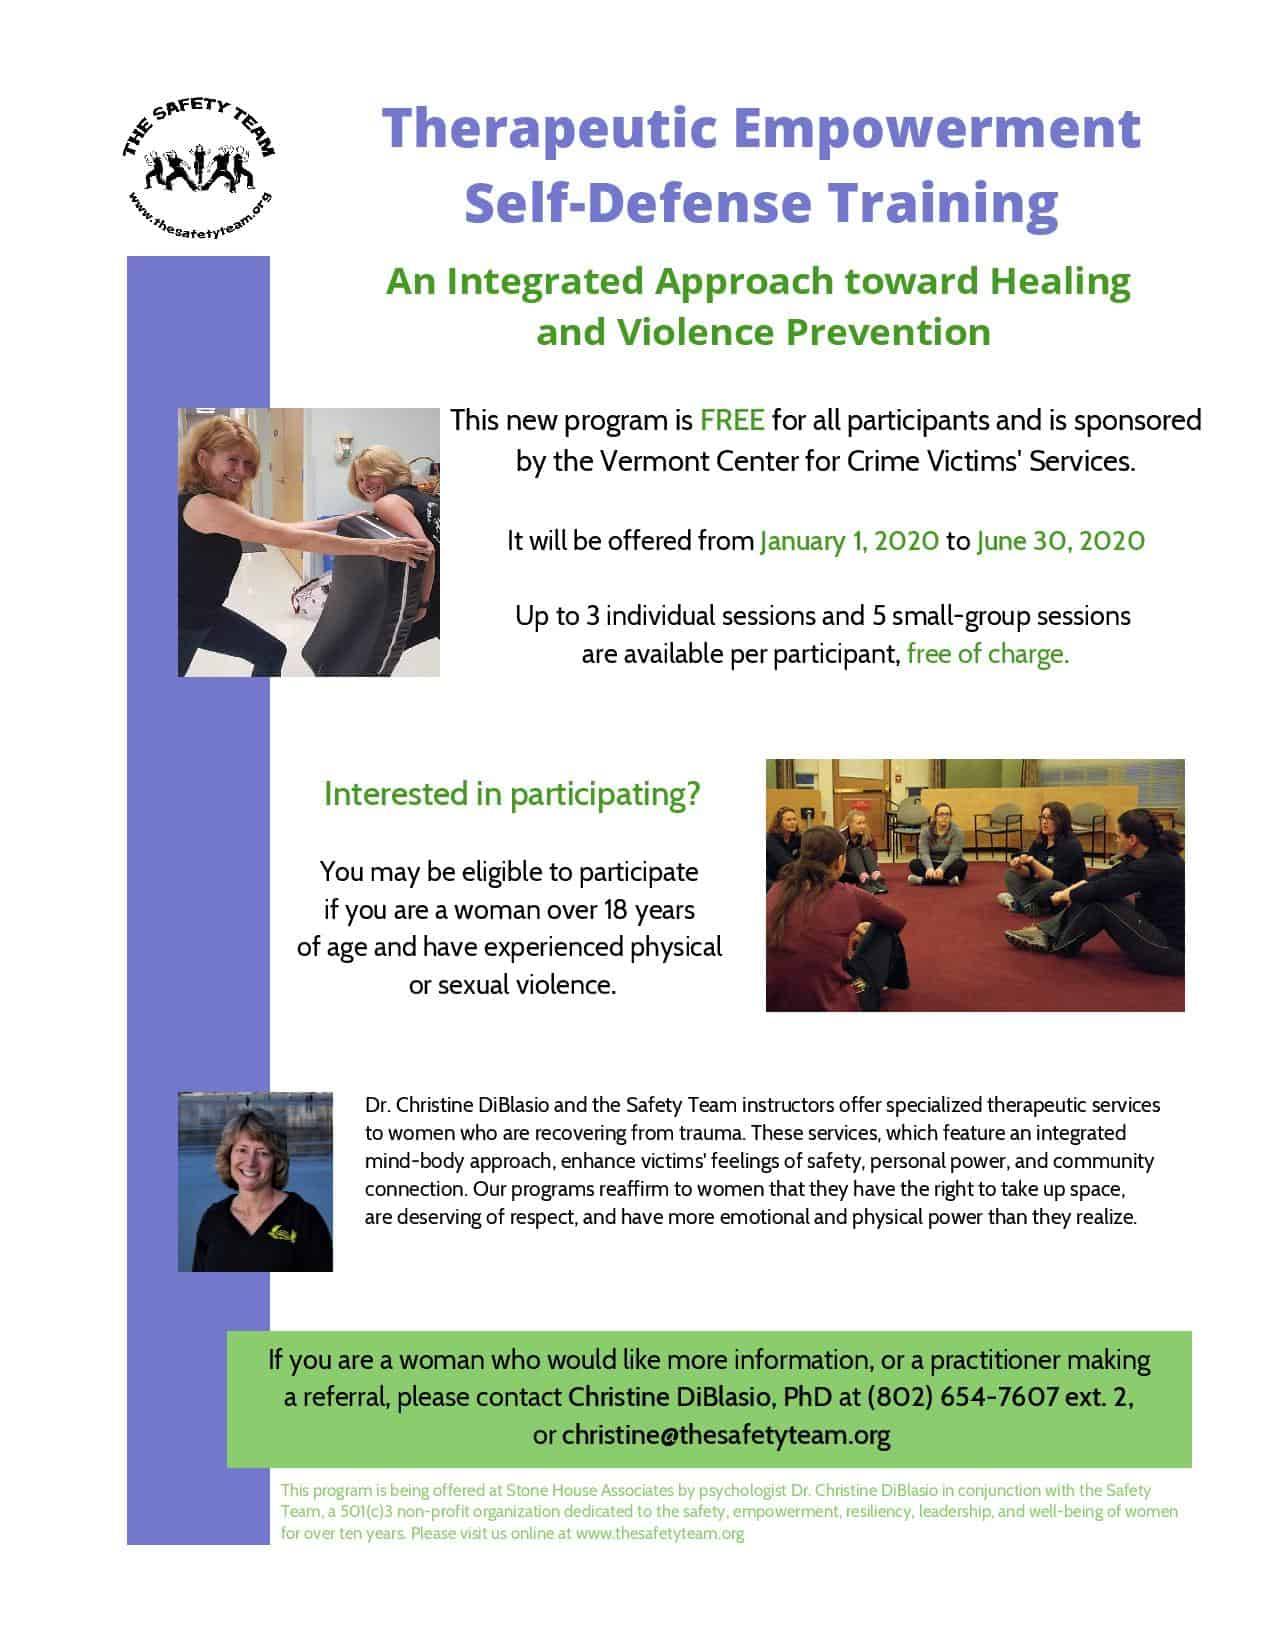 Therapeutic Empowerment Self-Defense Training: An Integrated Approach towards Trauma Recovery and Violence Prevention  Program Objectives and Key Components Psychoeducation about Trauma o	Grounding and Stabilization Techniques o	Information on: §	Neurobiological/Adrenaline Responses to Threat §	Redirecting Blame toward Perpetrator §	Somatic Reprocessing Therapeutic Empowerment Self-Defense Training                (see attached Logic Model) o	Sexual Assault Information o	Affirmative Consent o	ESD Mindset o	Verbal/Physical Boundary Setting o	Empowerment Self-Defense Techniques o	Risk Reduction Strategies